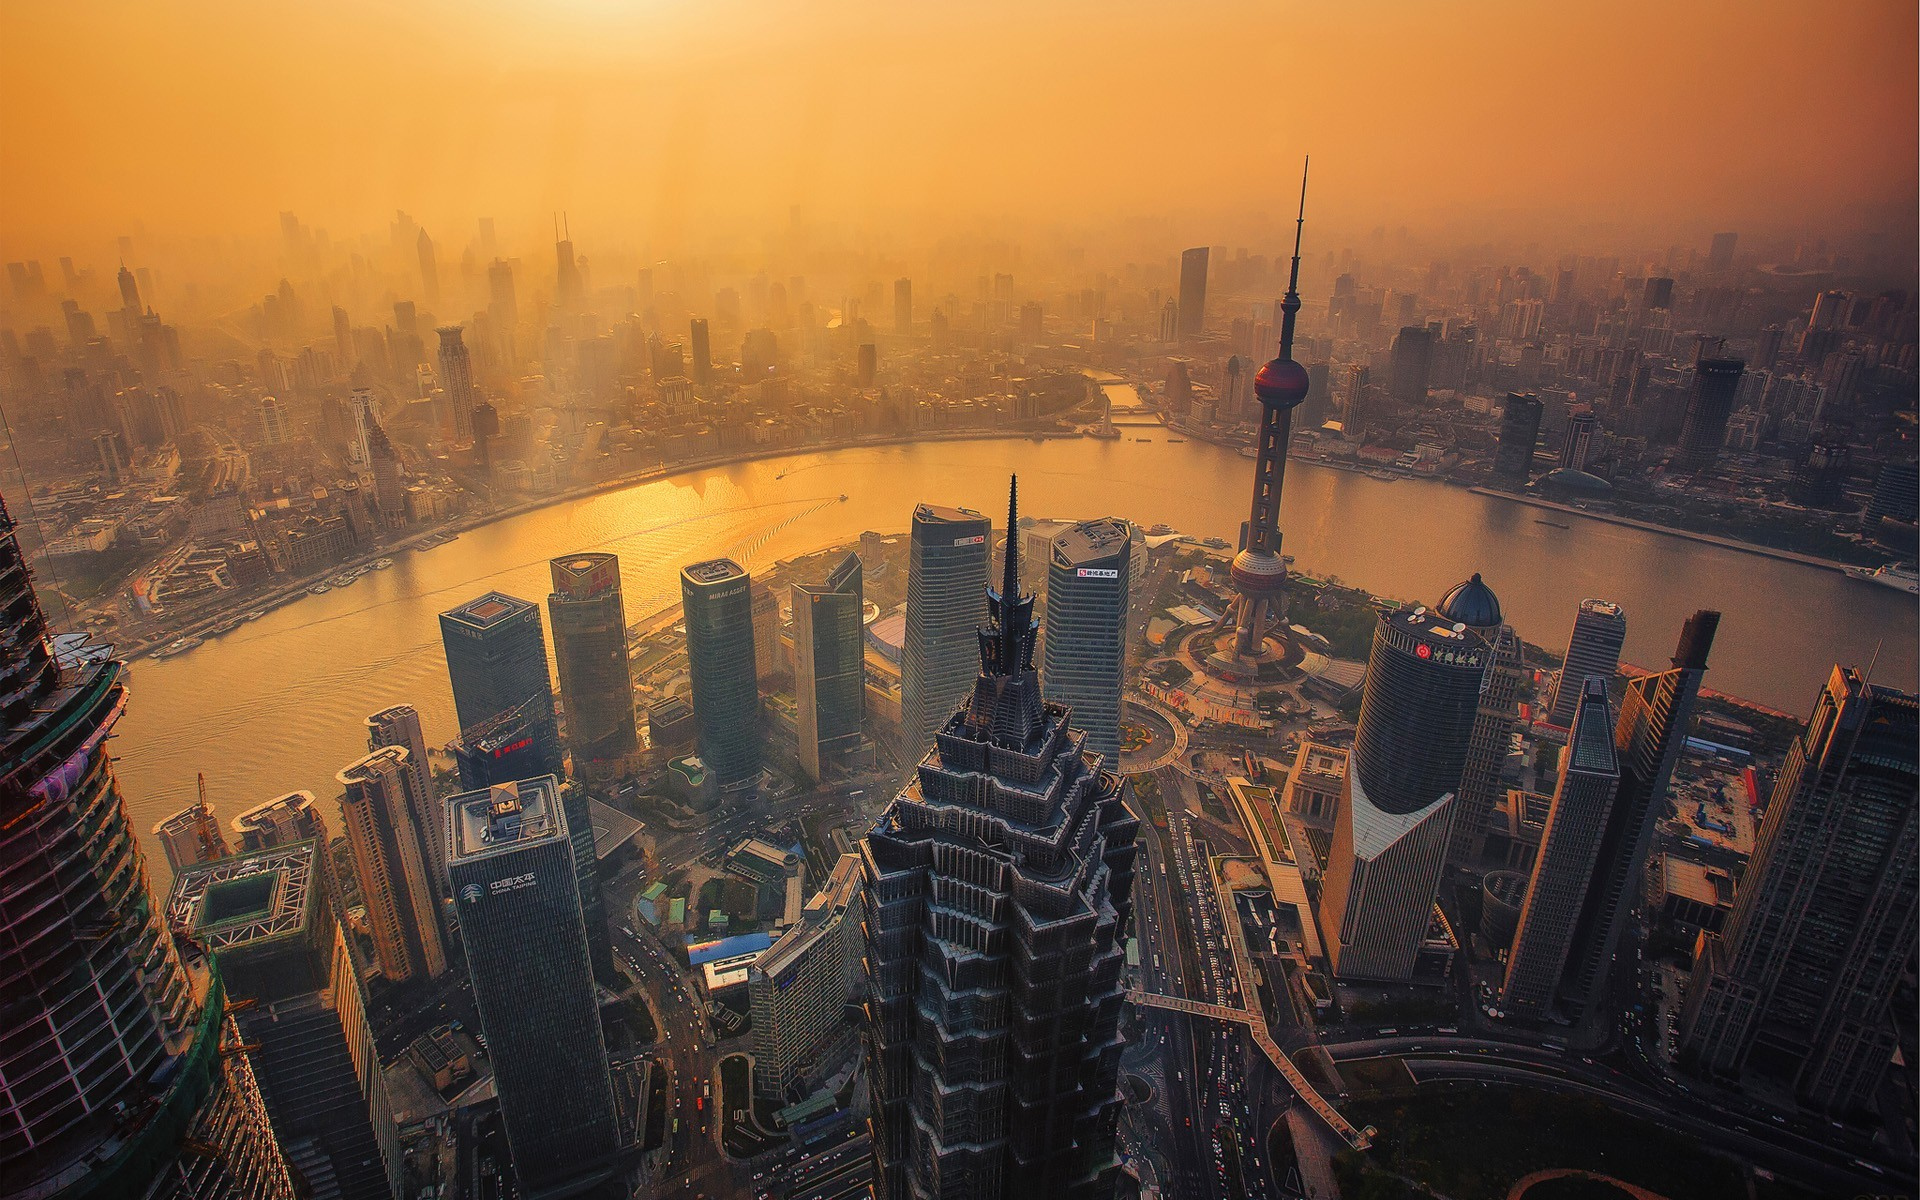 shanghai-from-above-world-hd-wallpaper-1920x1200-2662